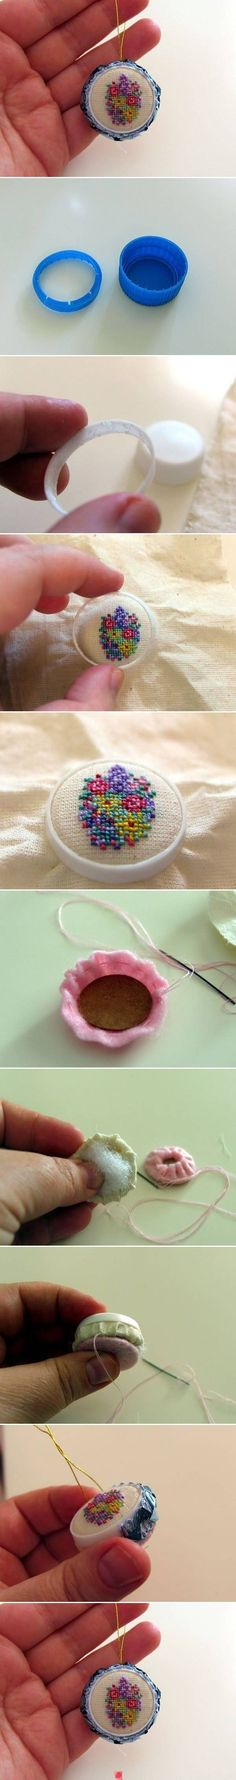 embroidery stitching using a soda pop soft drink bottle lid, cute pretty floral design, could be used as ornaments or jewelry